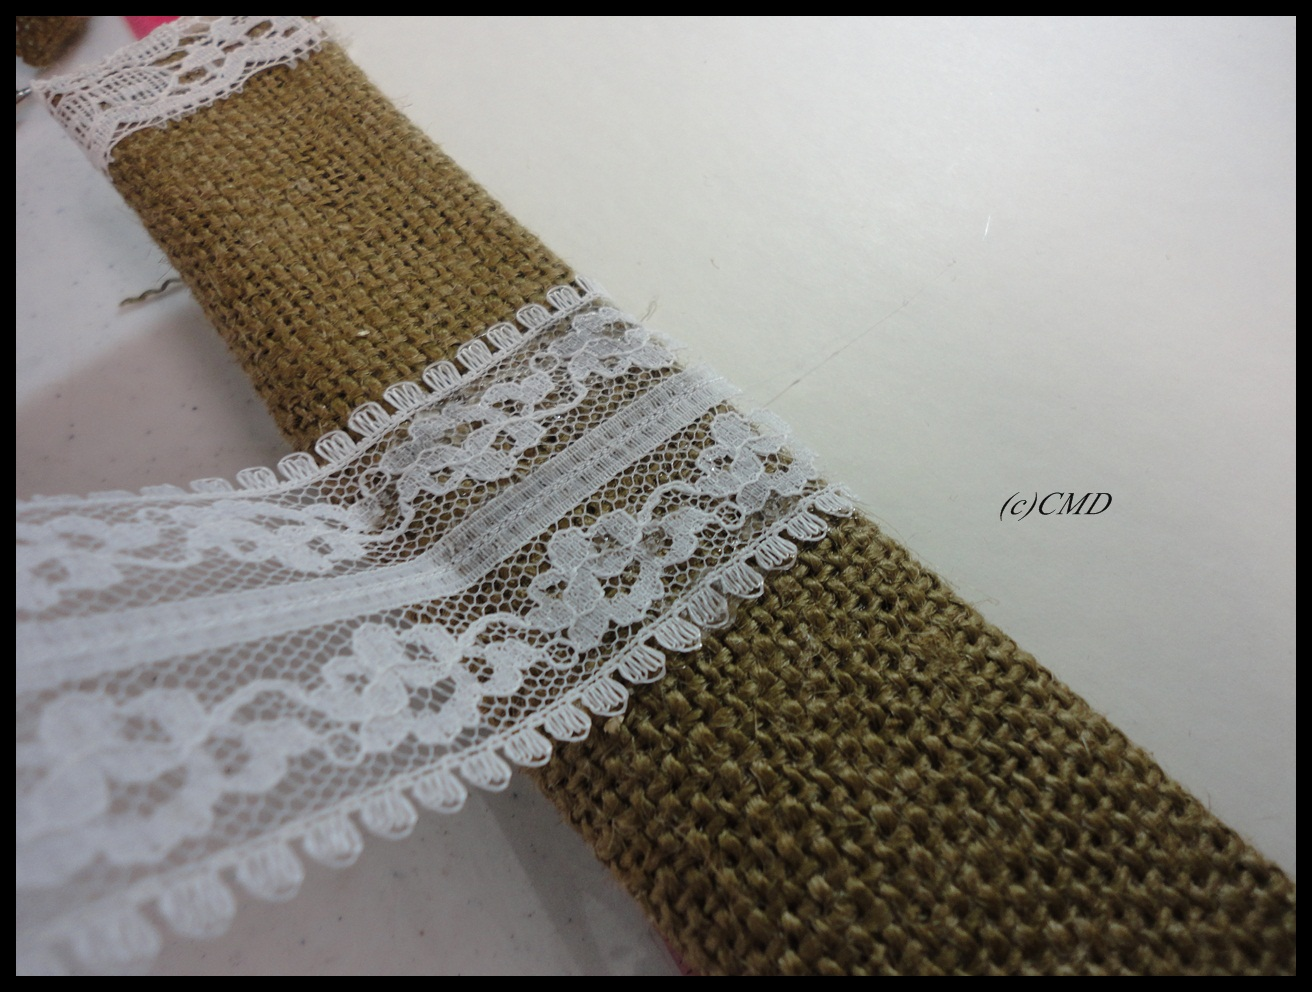 Crochet Lace Book Cover ~ Creating a burlap book cover finished with lace flowers